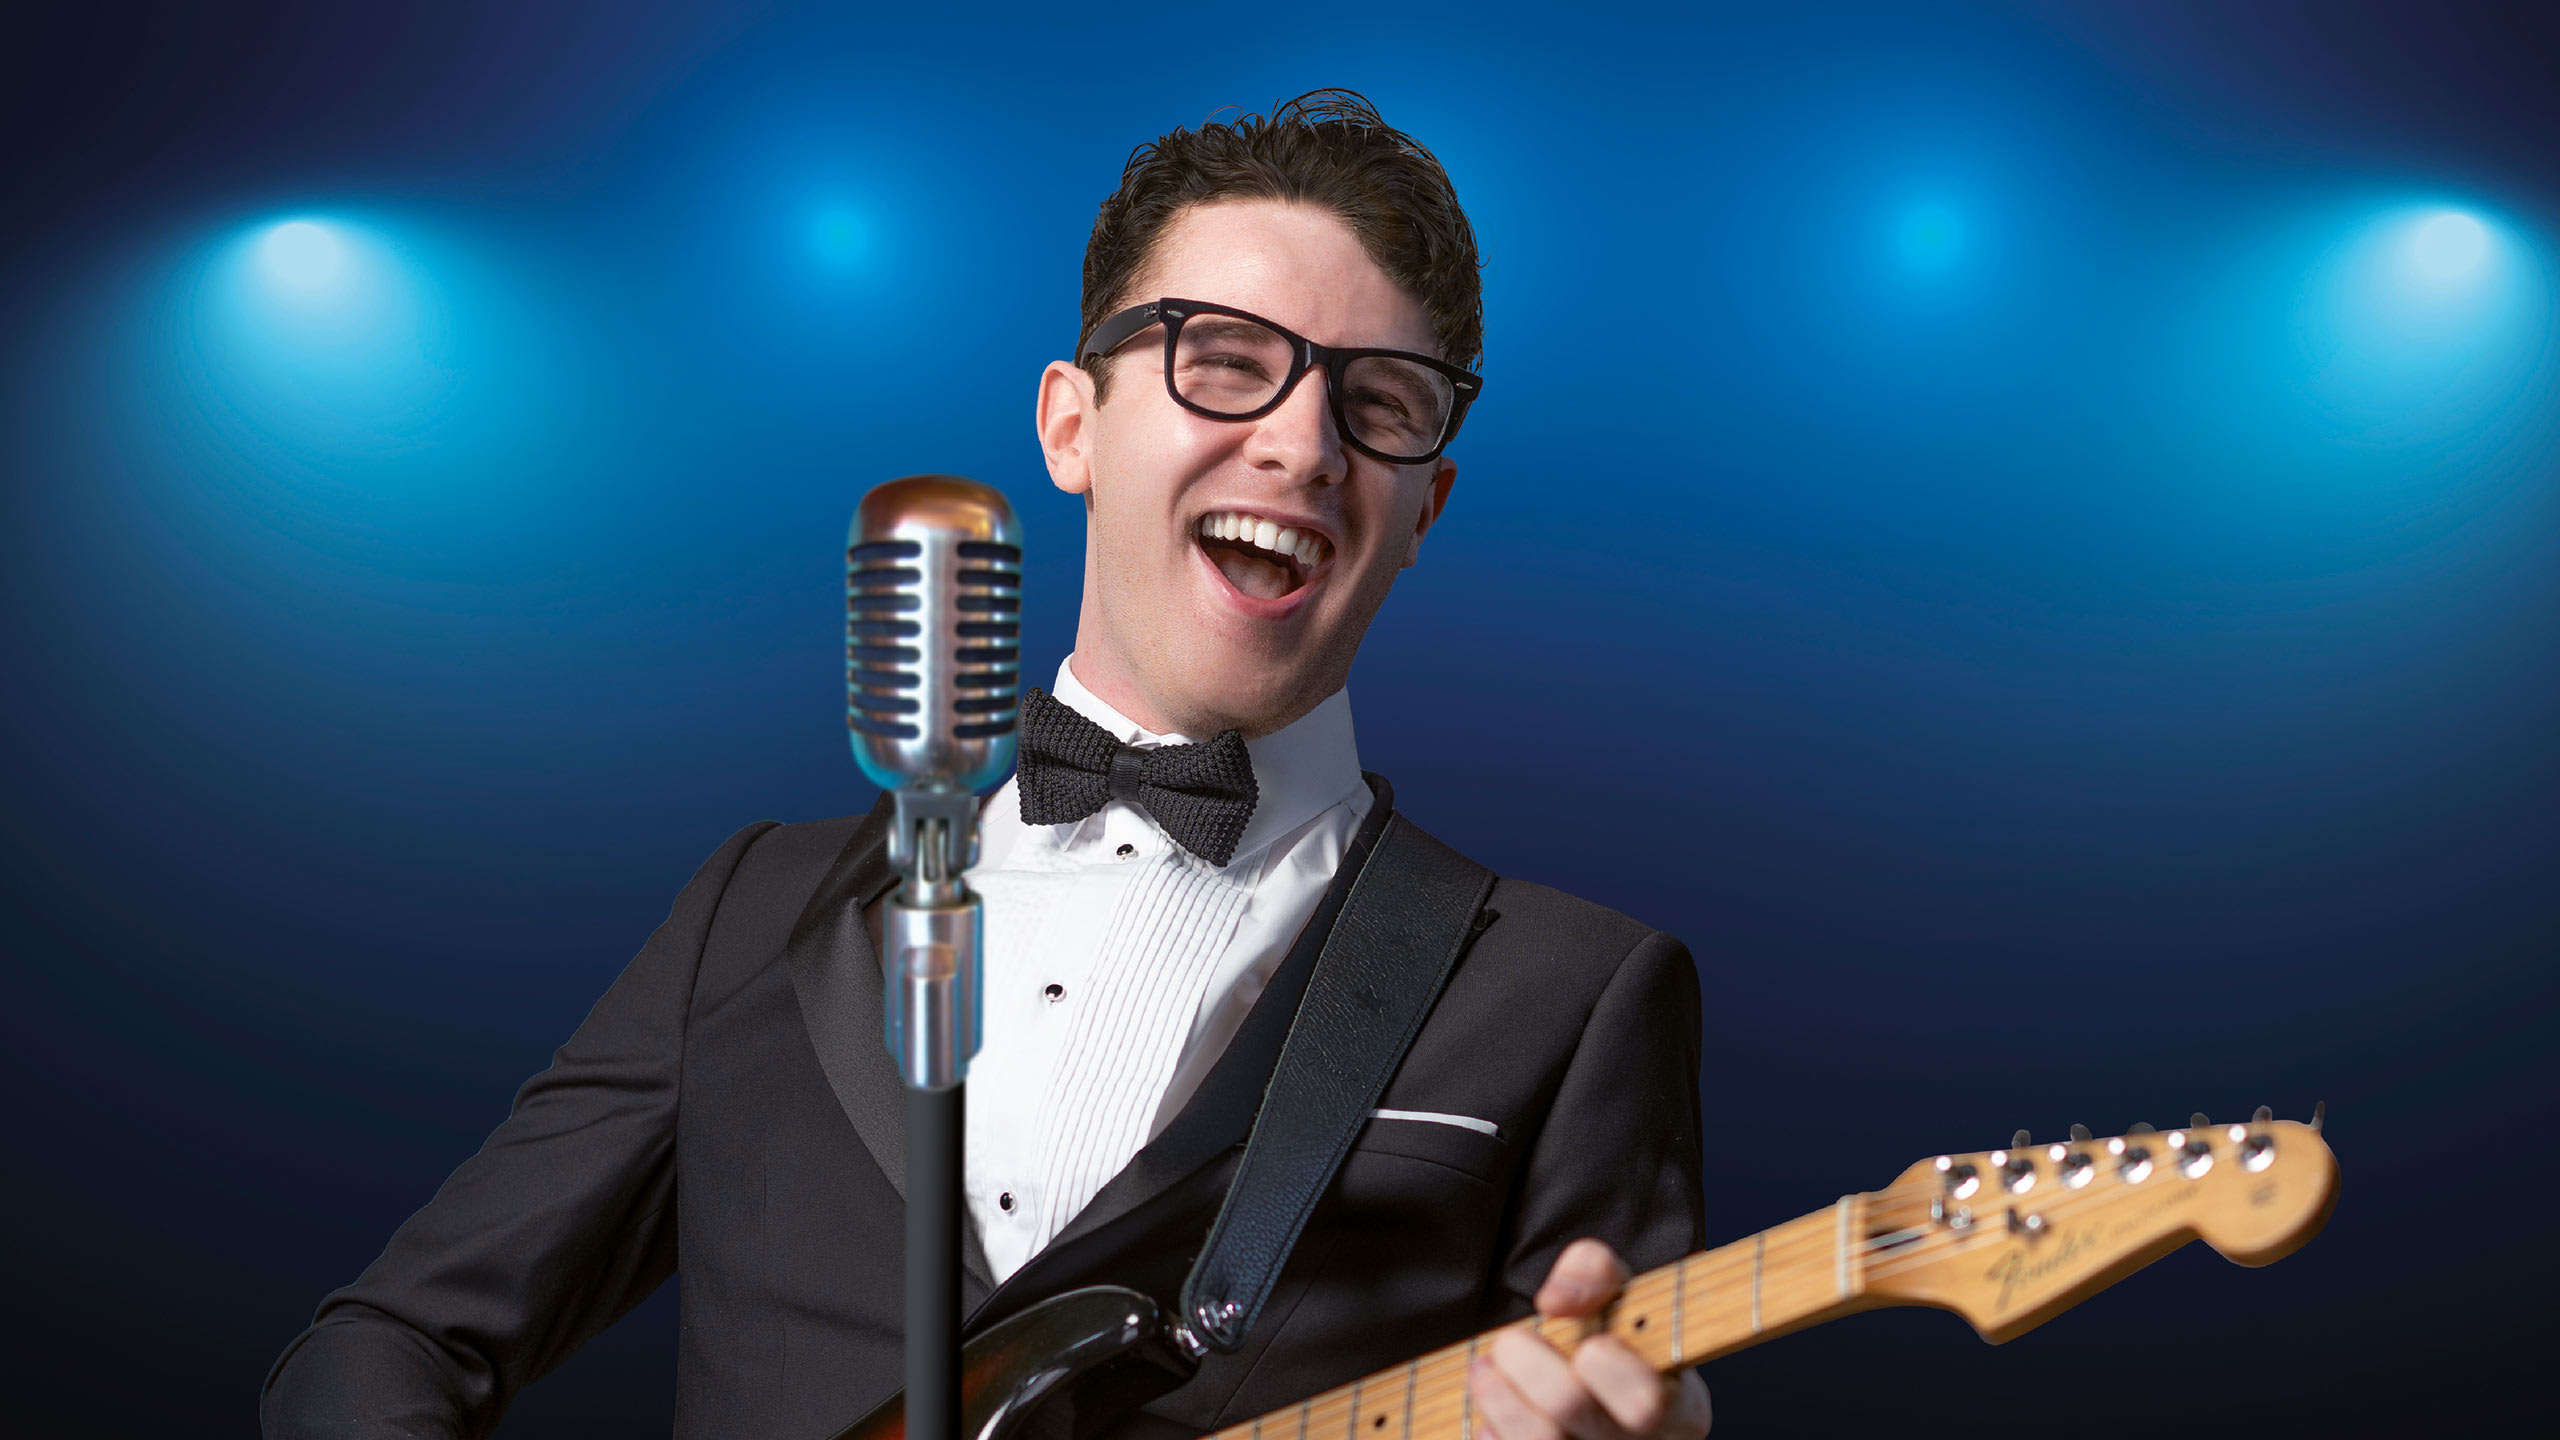 Buddy Holly and The Cricketers Prod Shot